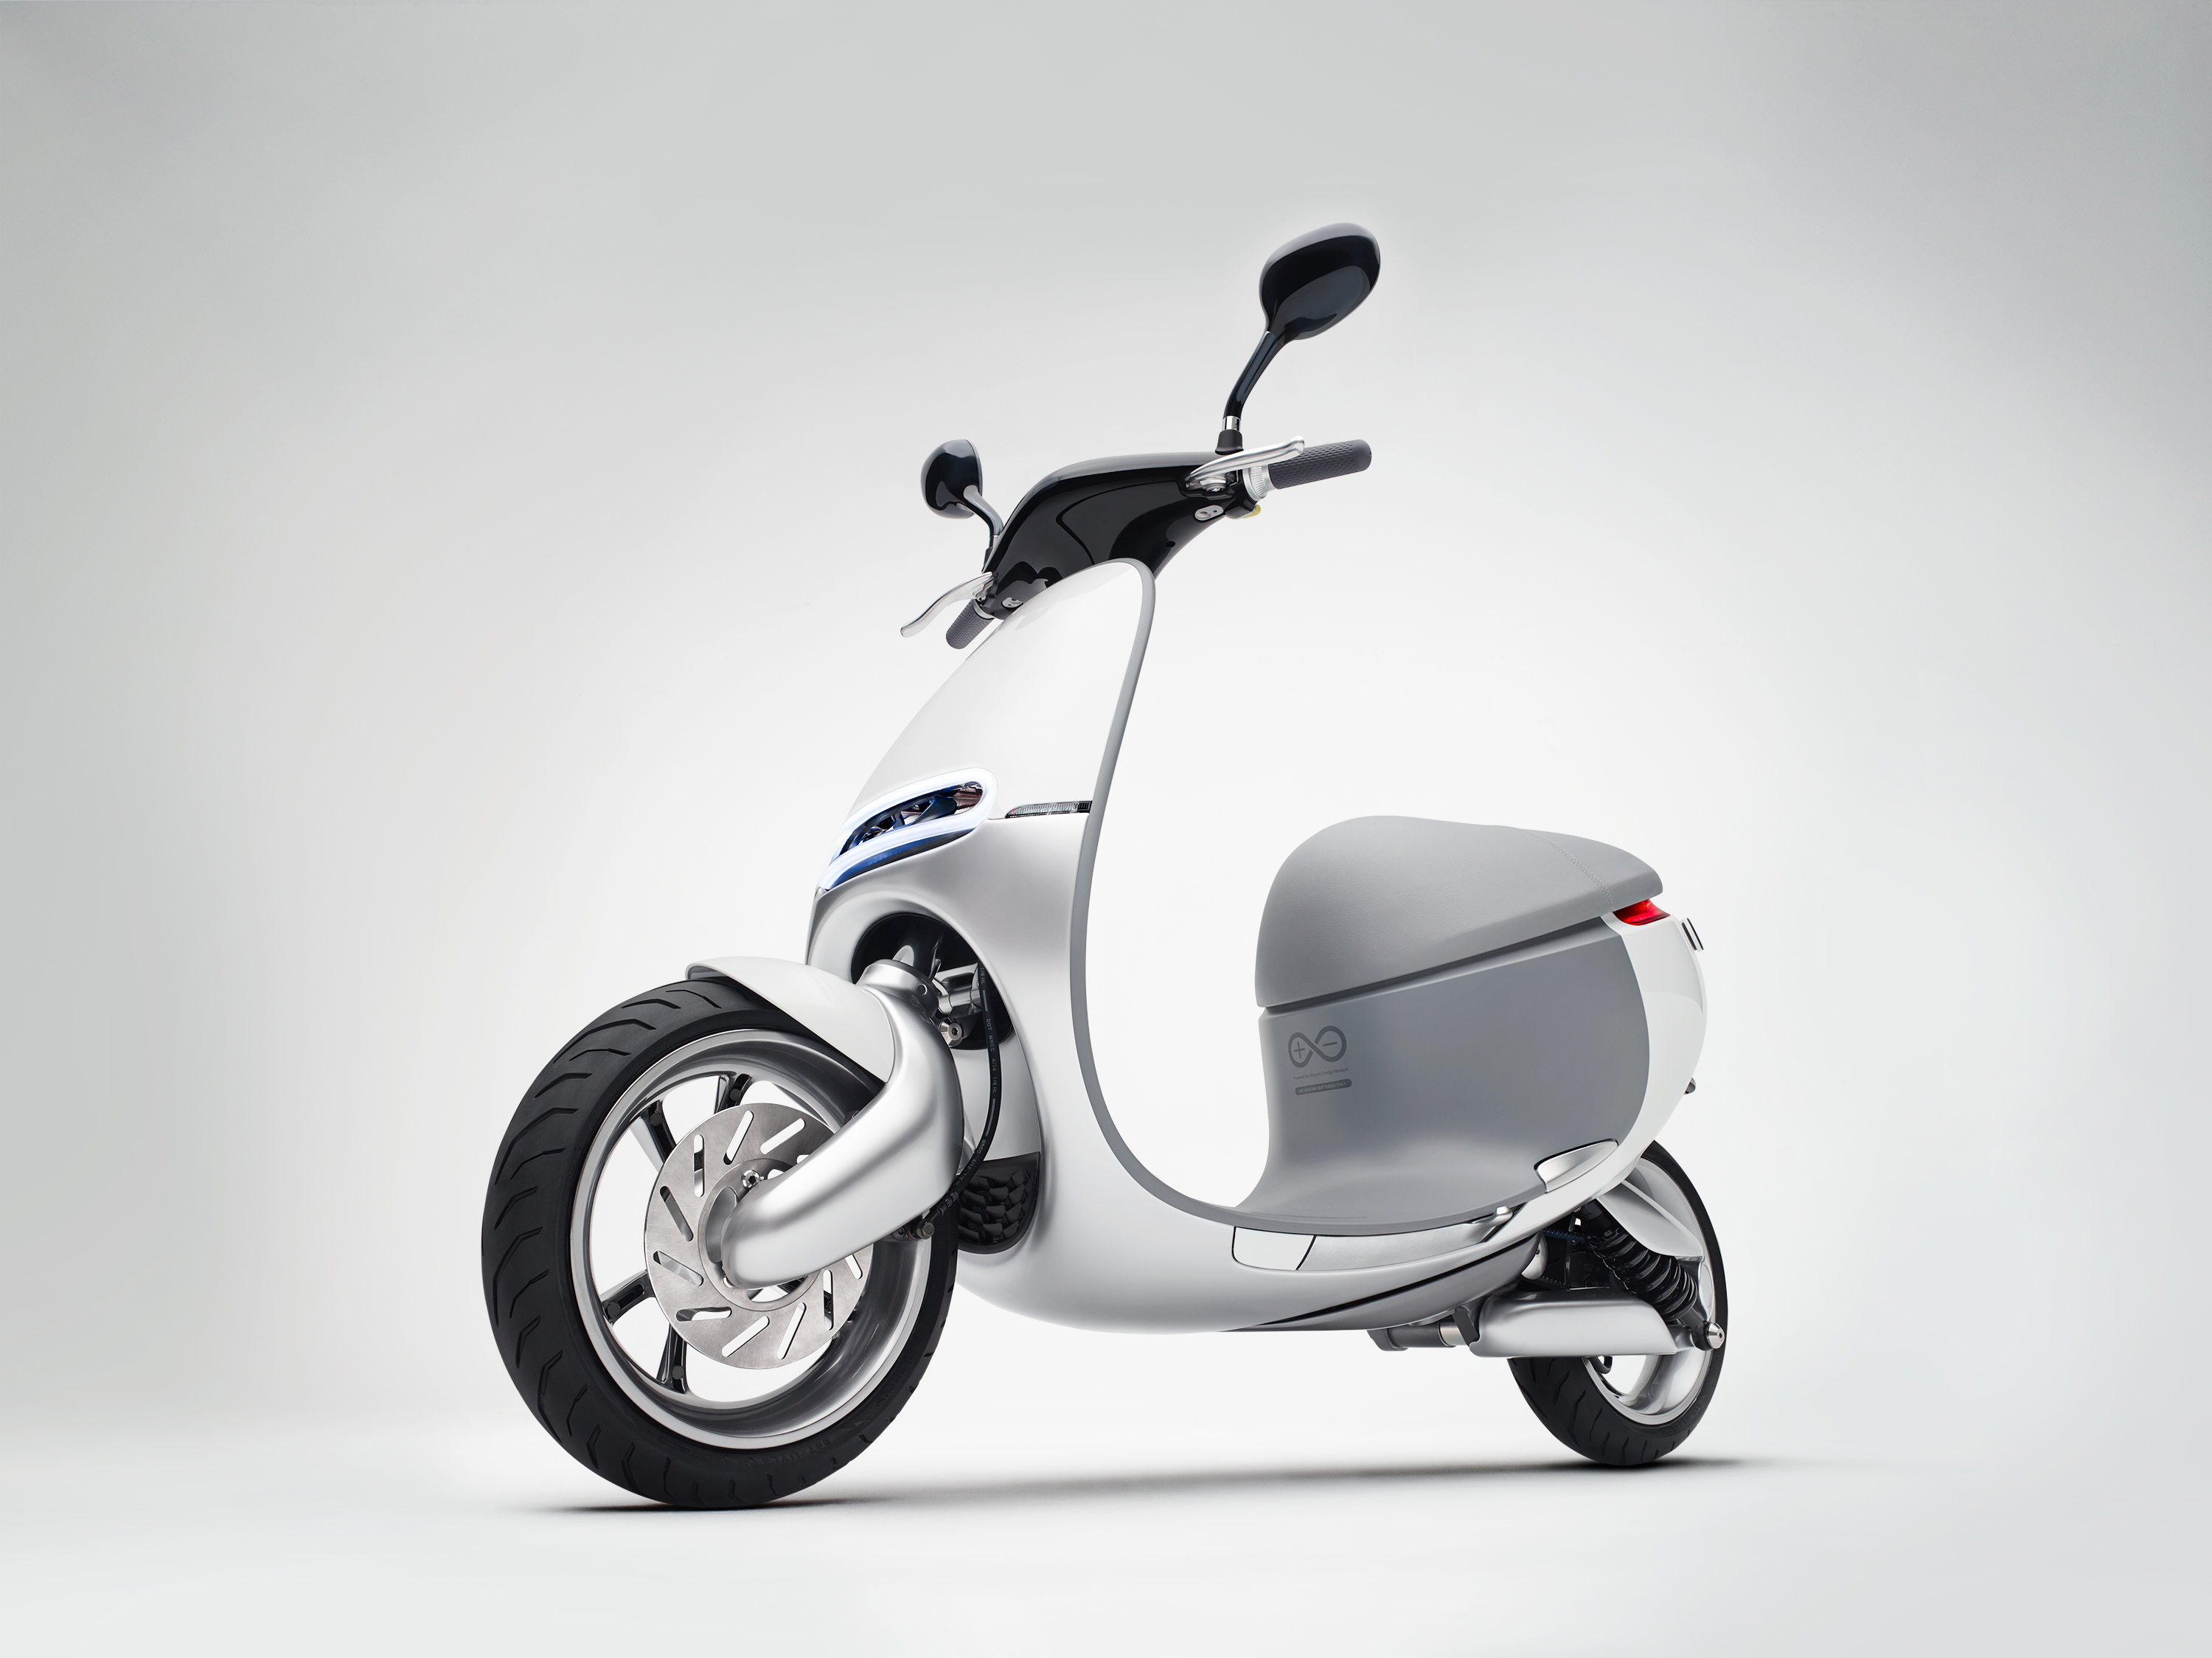 Ex-HTC execs launch futuristic scooter, with a familiar